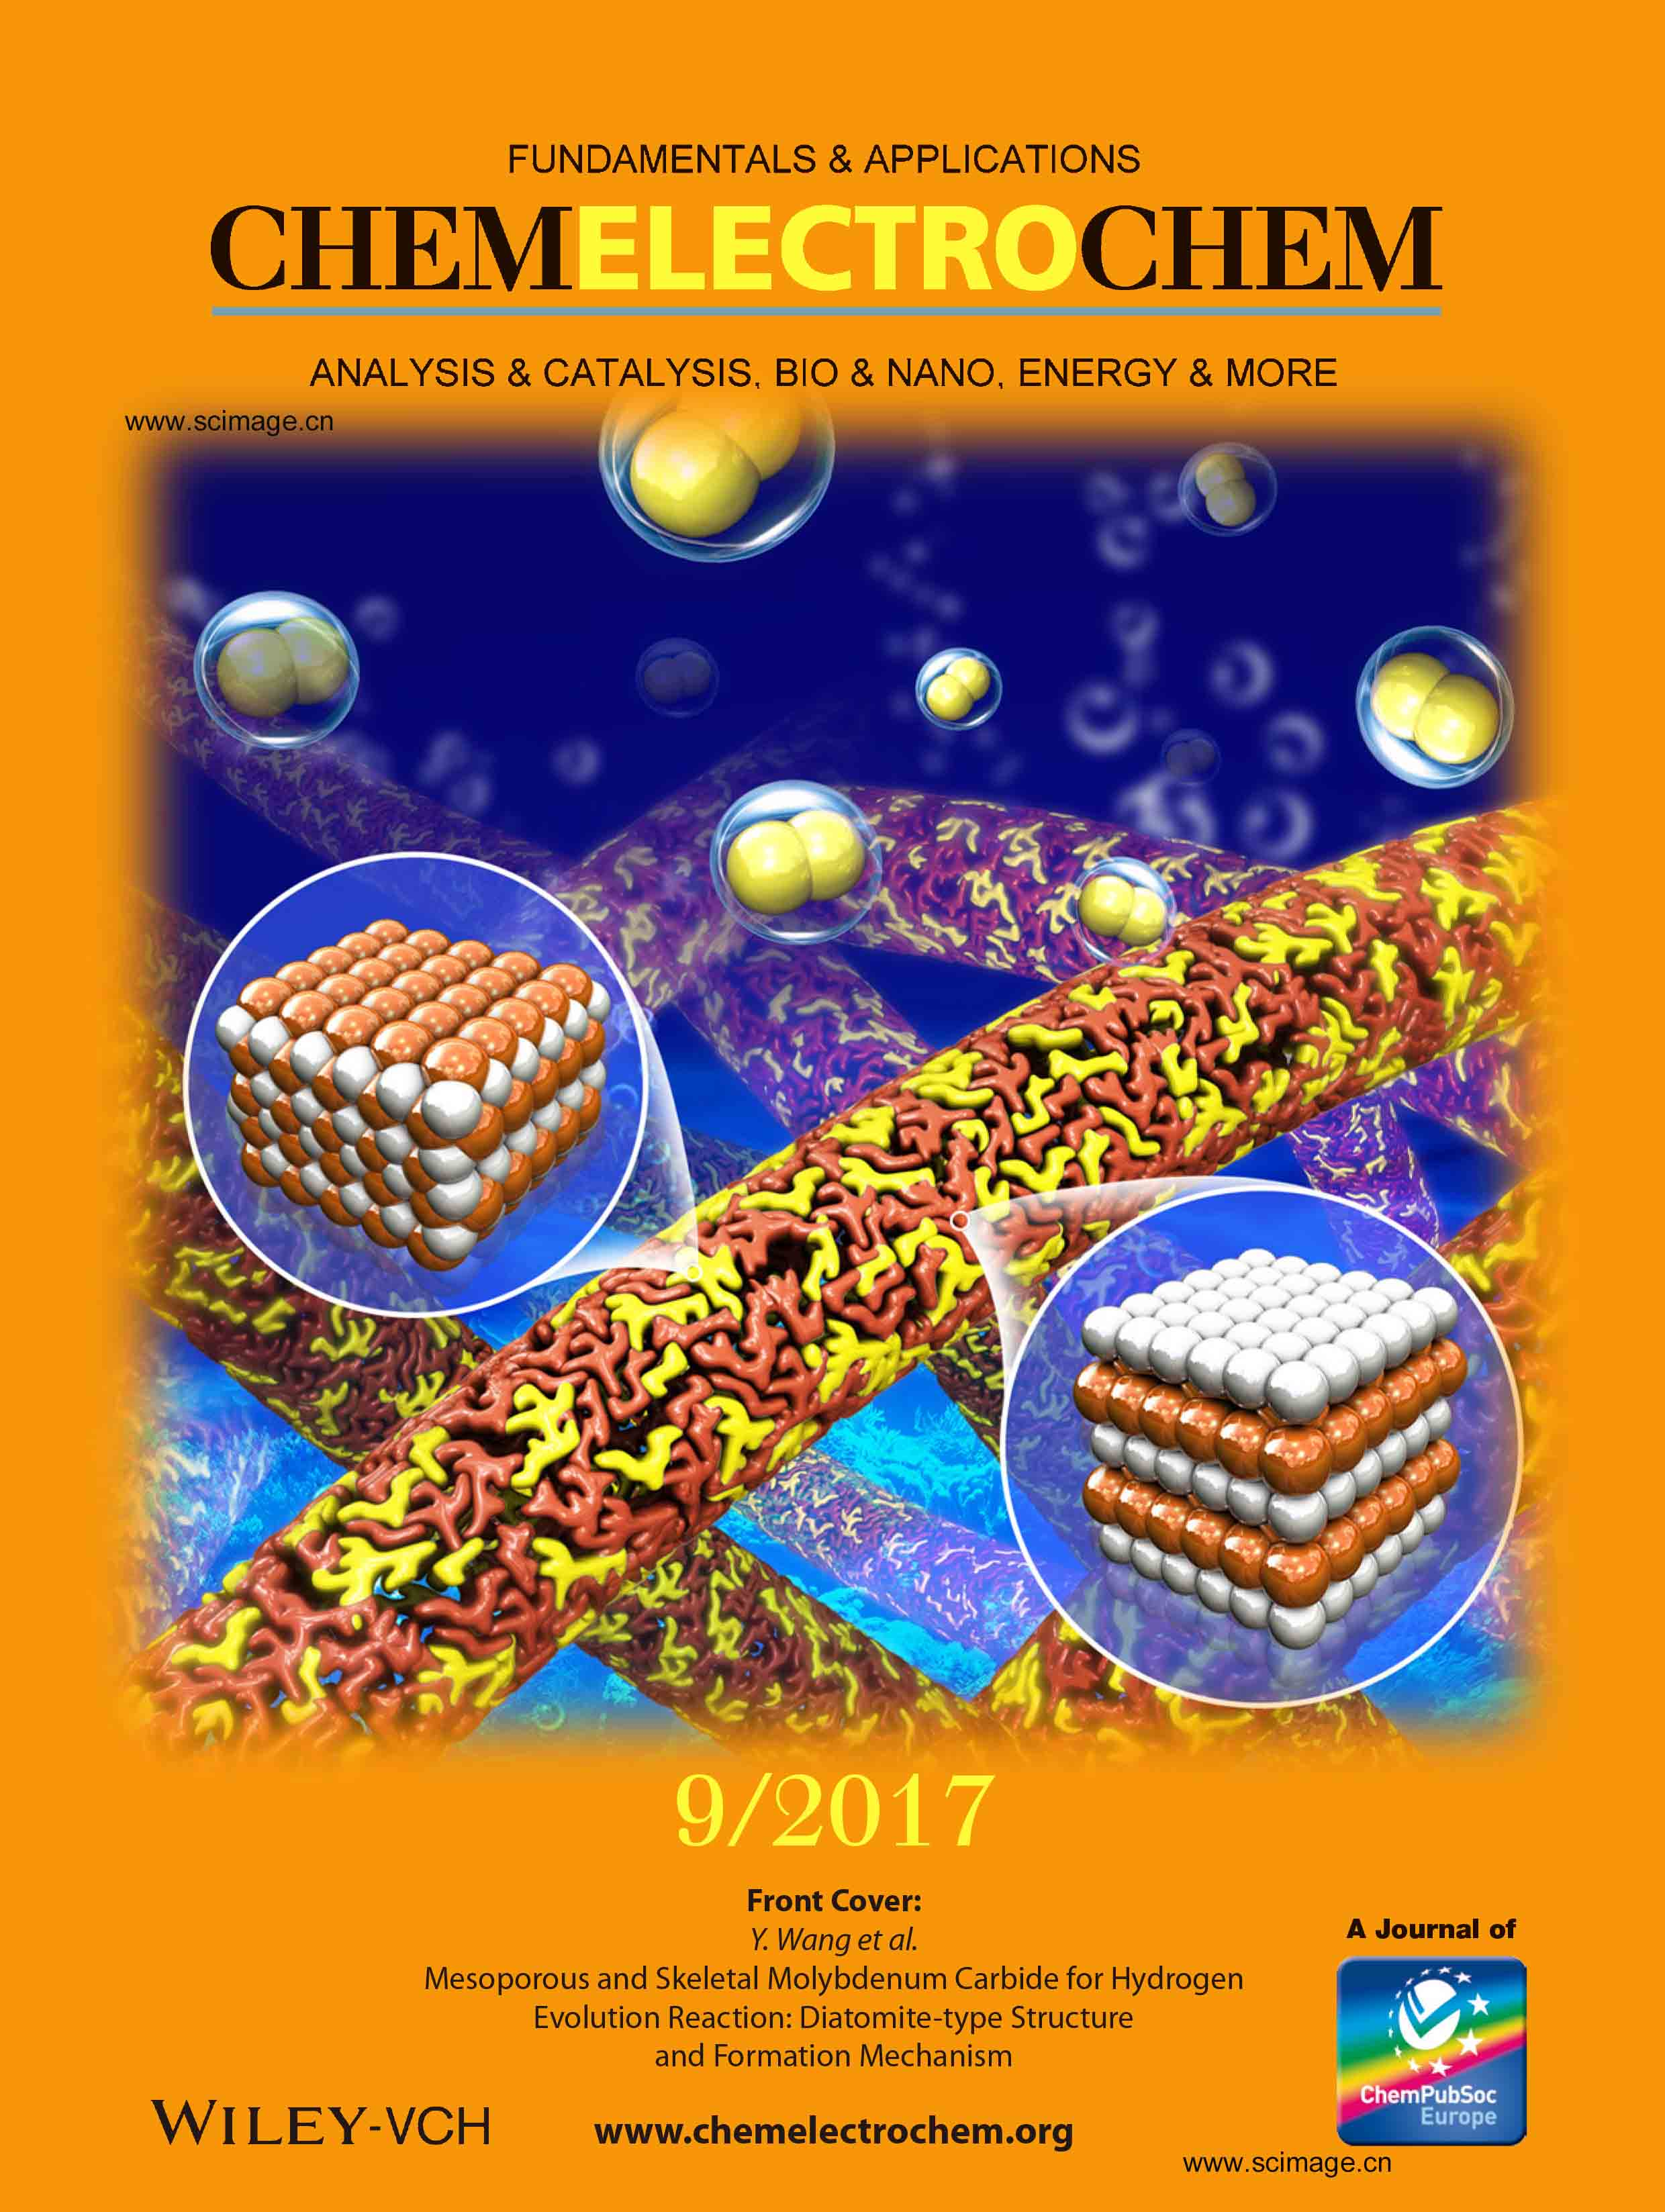 Mesoporous and Skeletal Molybdenum Carbide for Hydrogen Evolution Reaction: Diatomite-Type Structure and Formation Mechanism